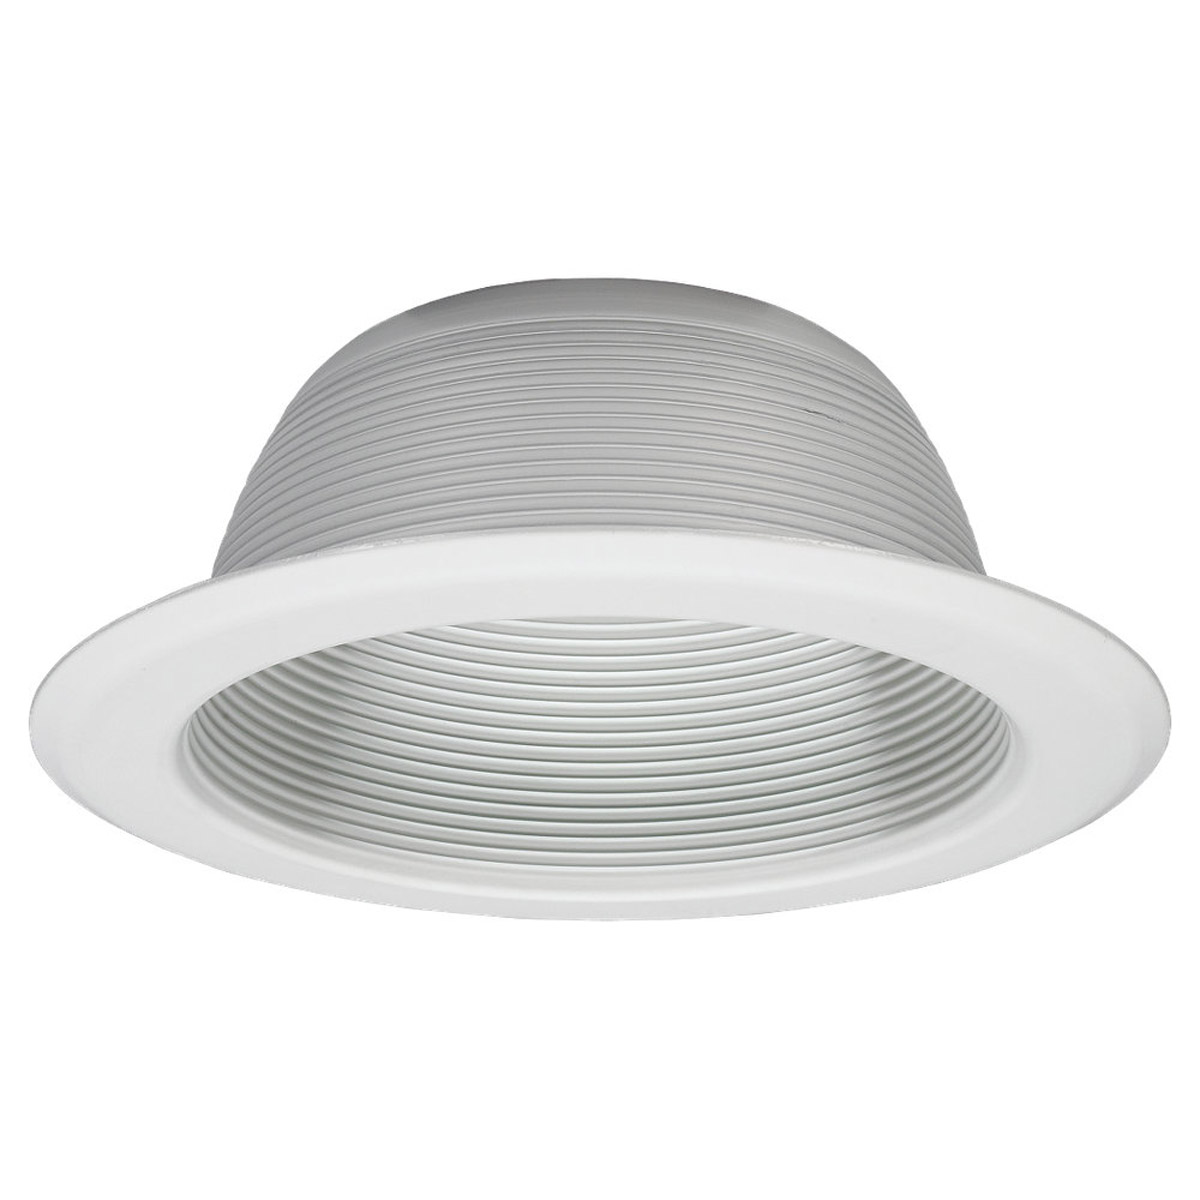 Sea Gull Lighting Signature Recessed Trim Only in White 1125-14